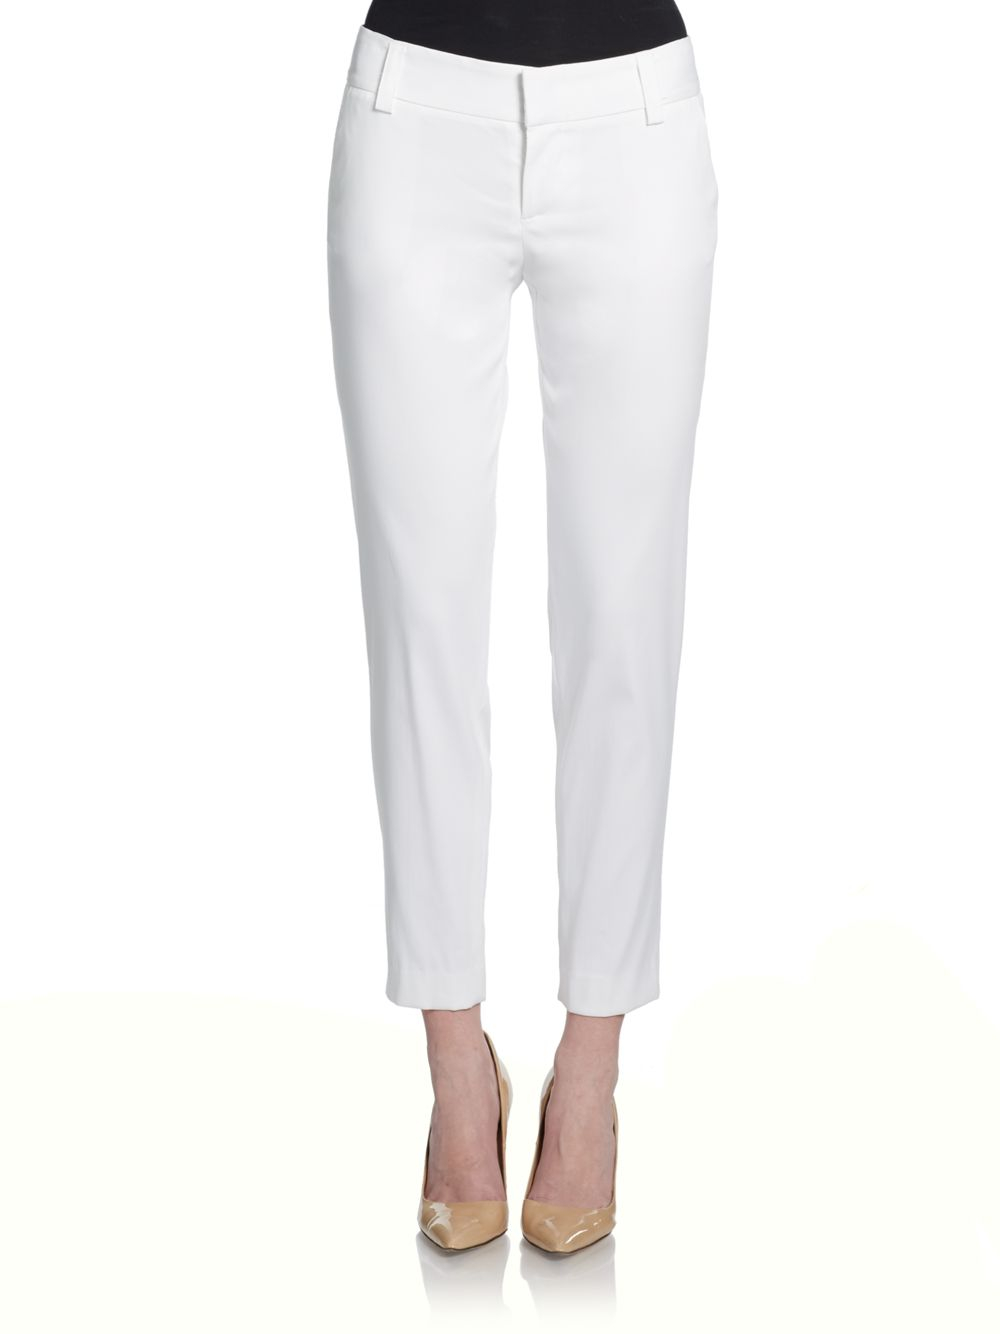 white pencil pants - Pi Pants